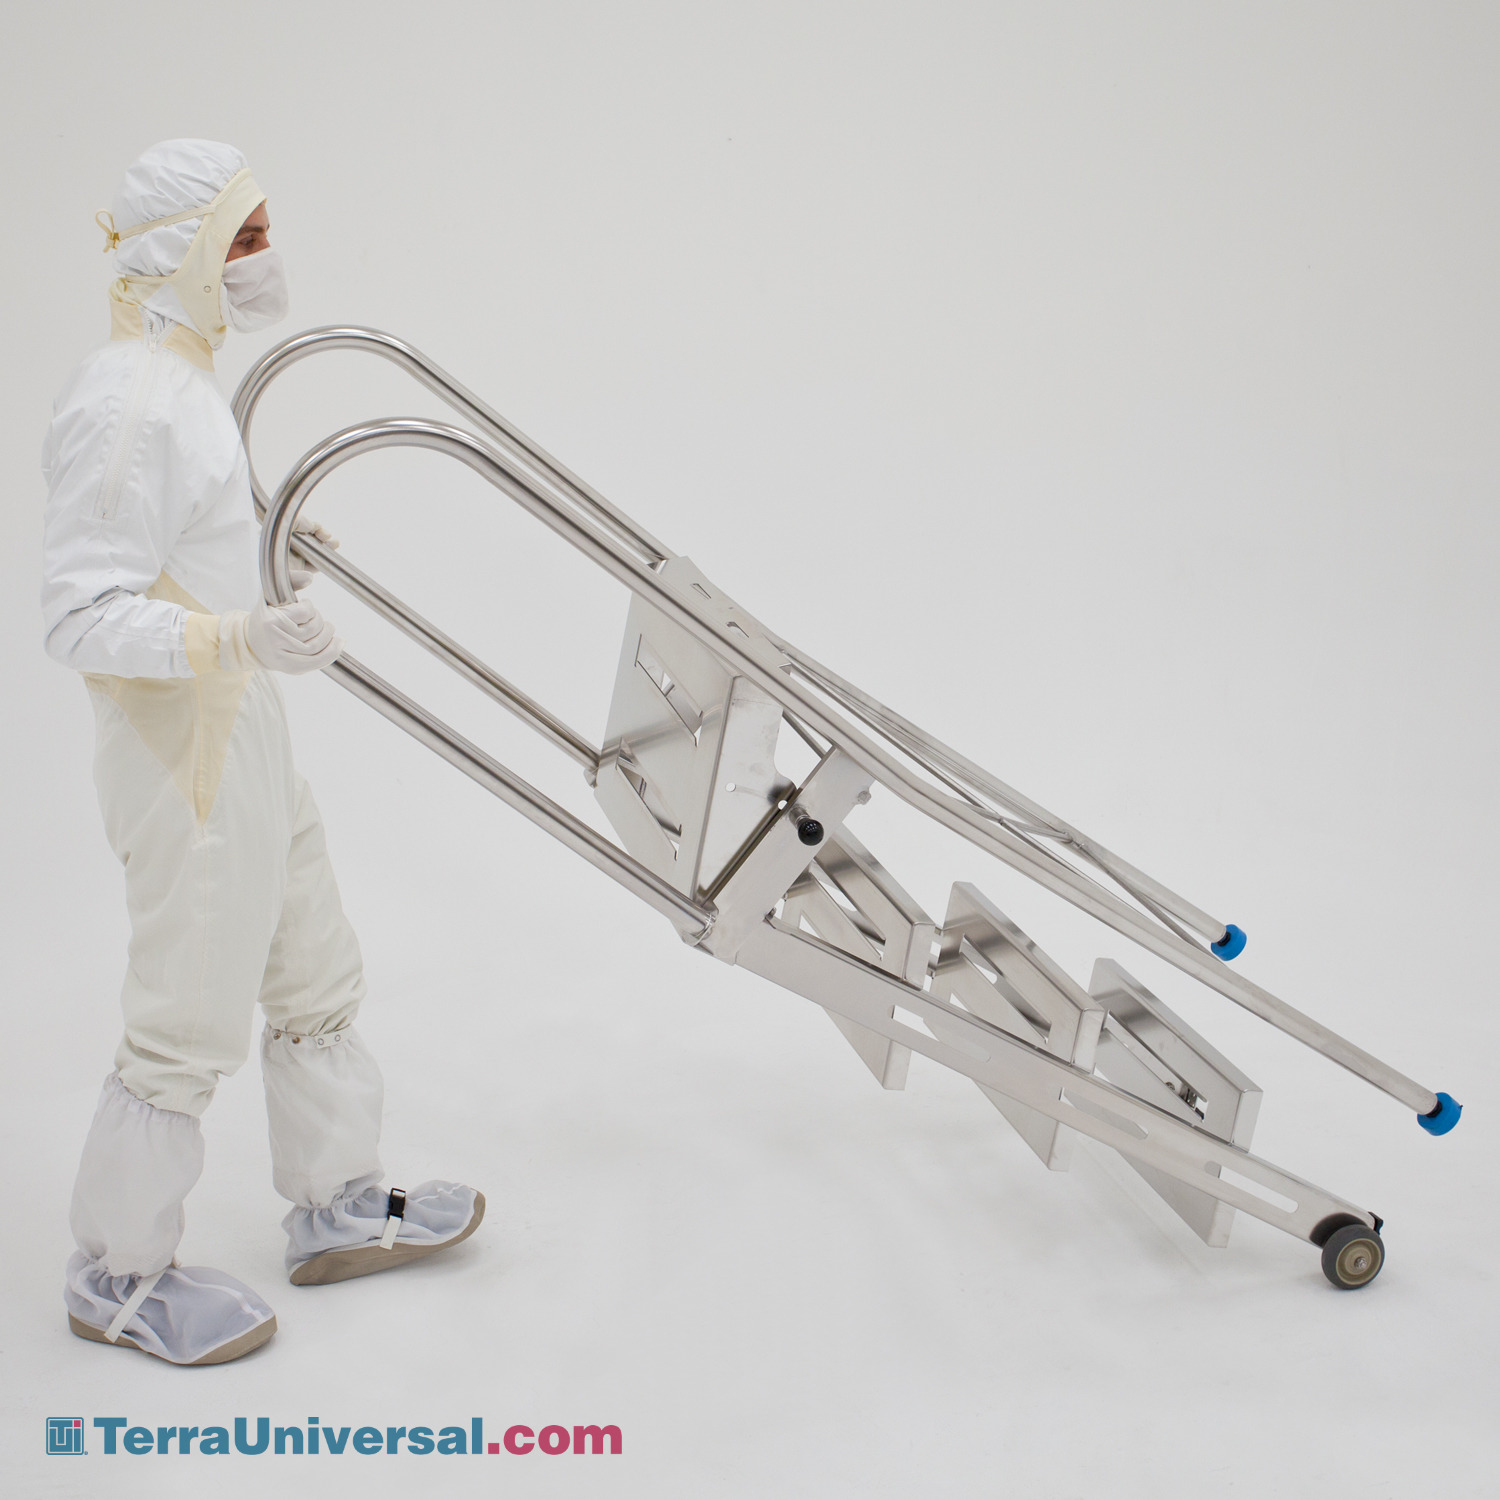 Cleanroom Step Stairs, Work Platforms and Folding Ladders